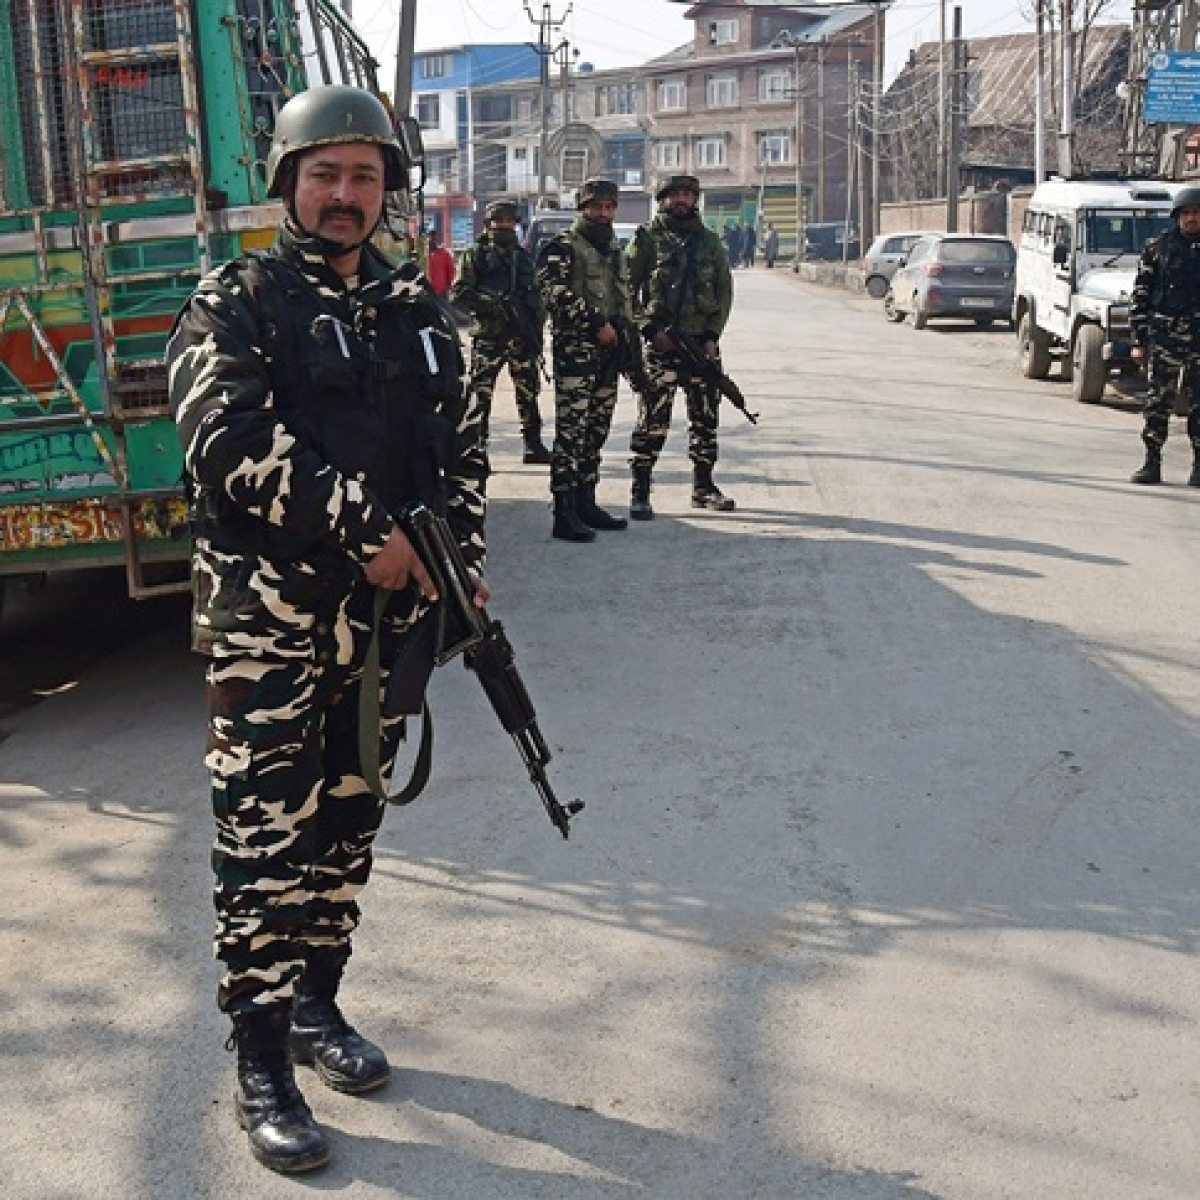 Terror-related violence in J&K down by 60 per cent since January: DGP Dilbagh Singh tells Union Minister